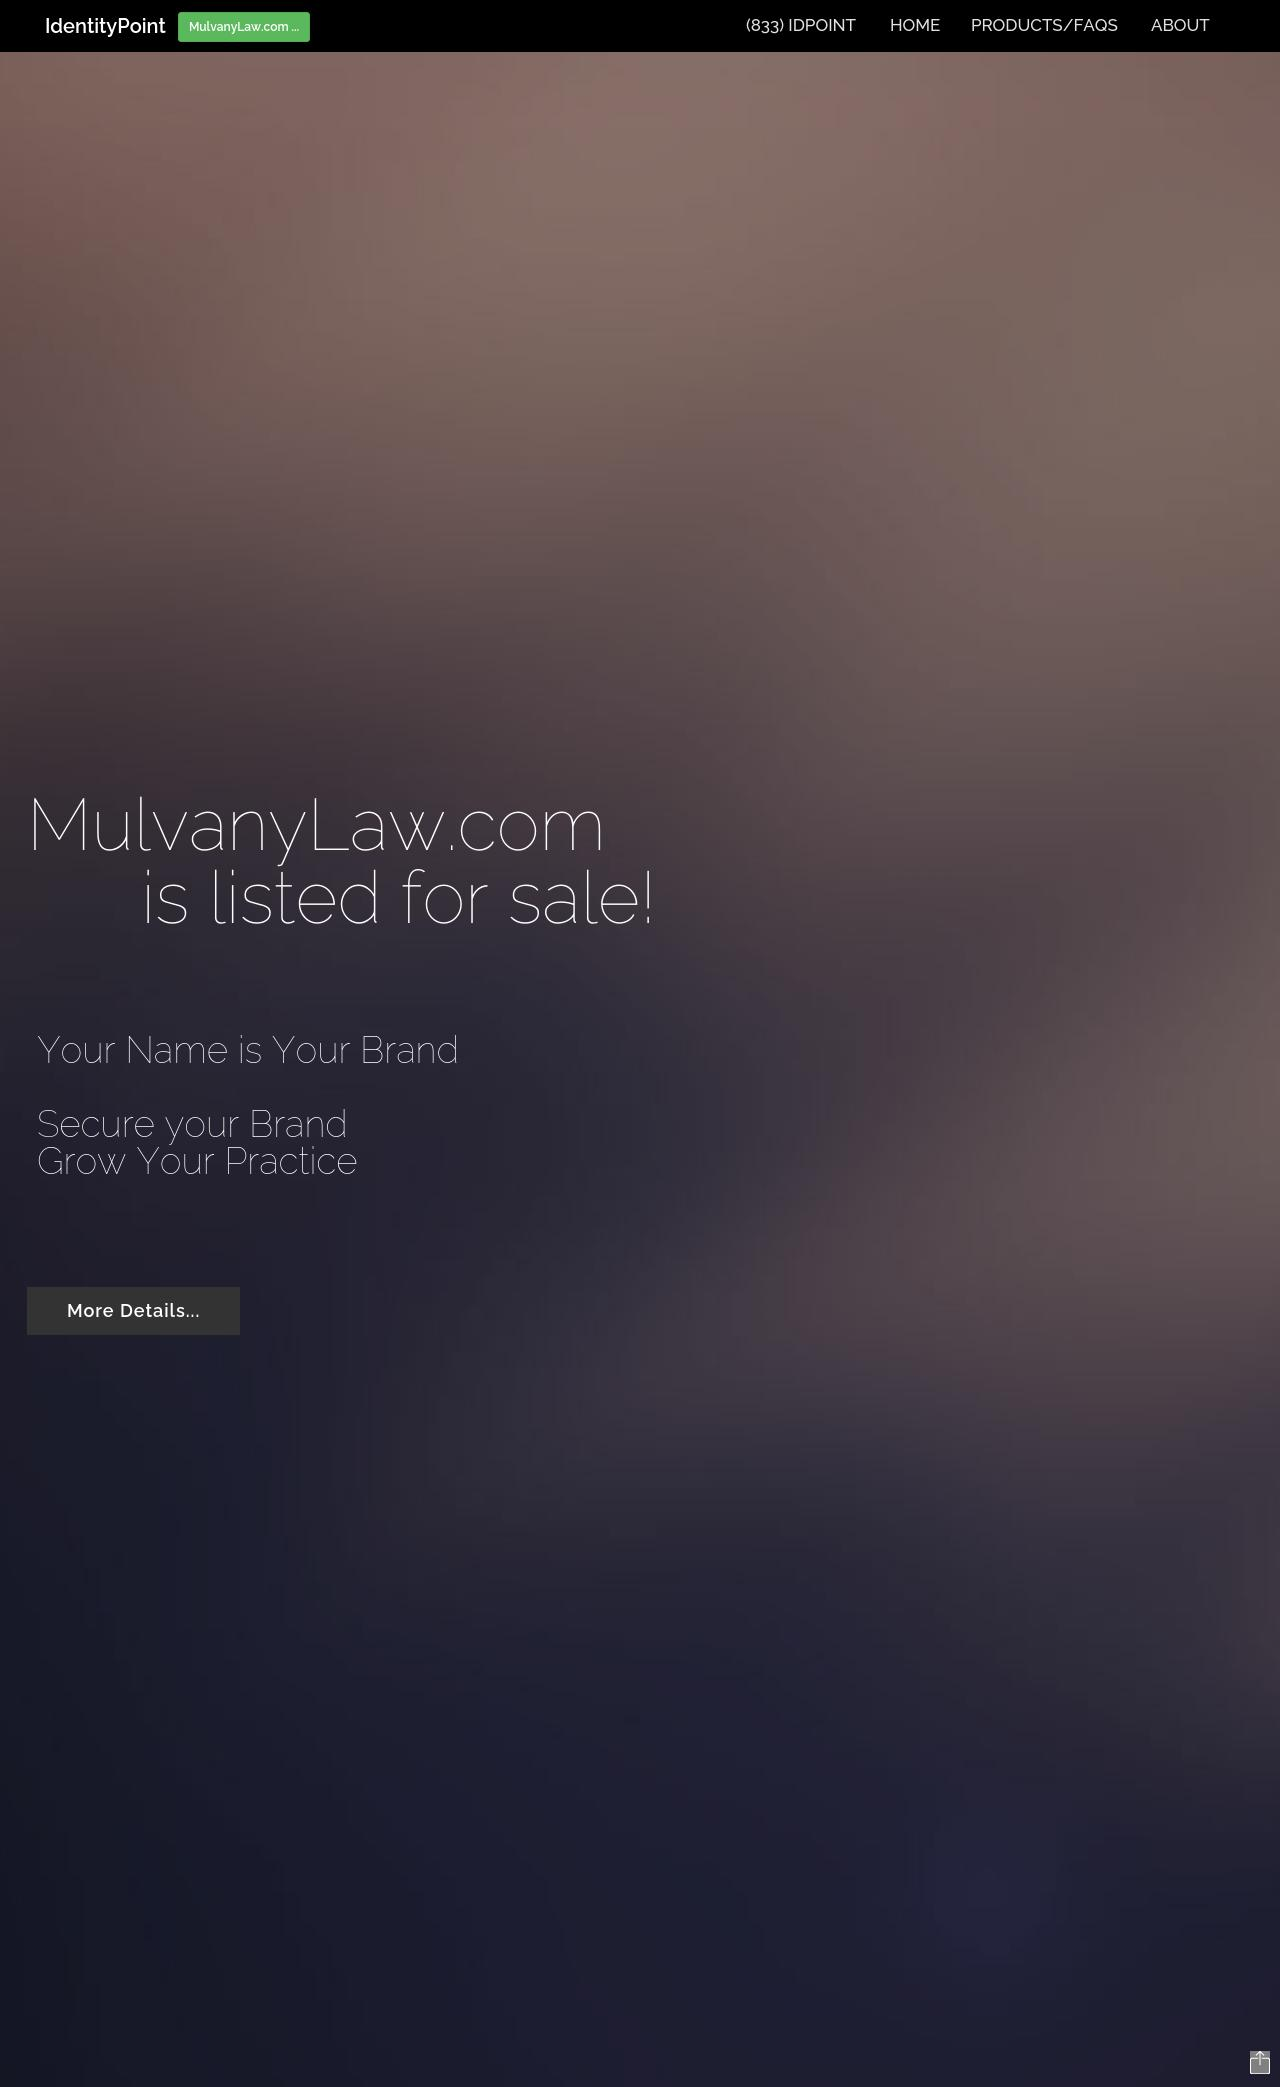 mulvany, patrick h - Indianapolis IN Lawyers